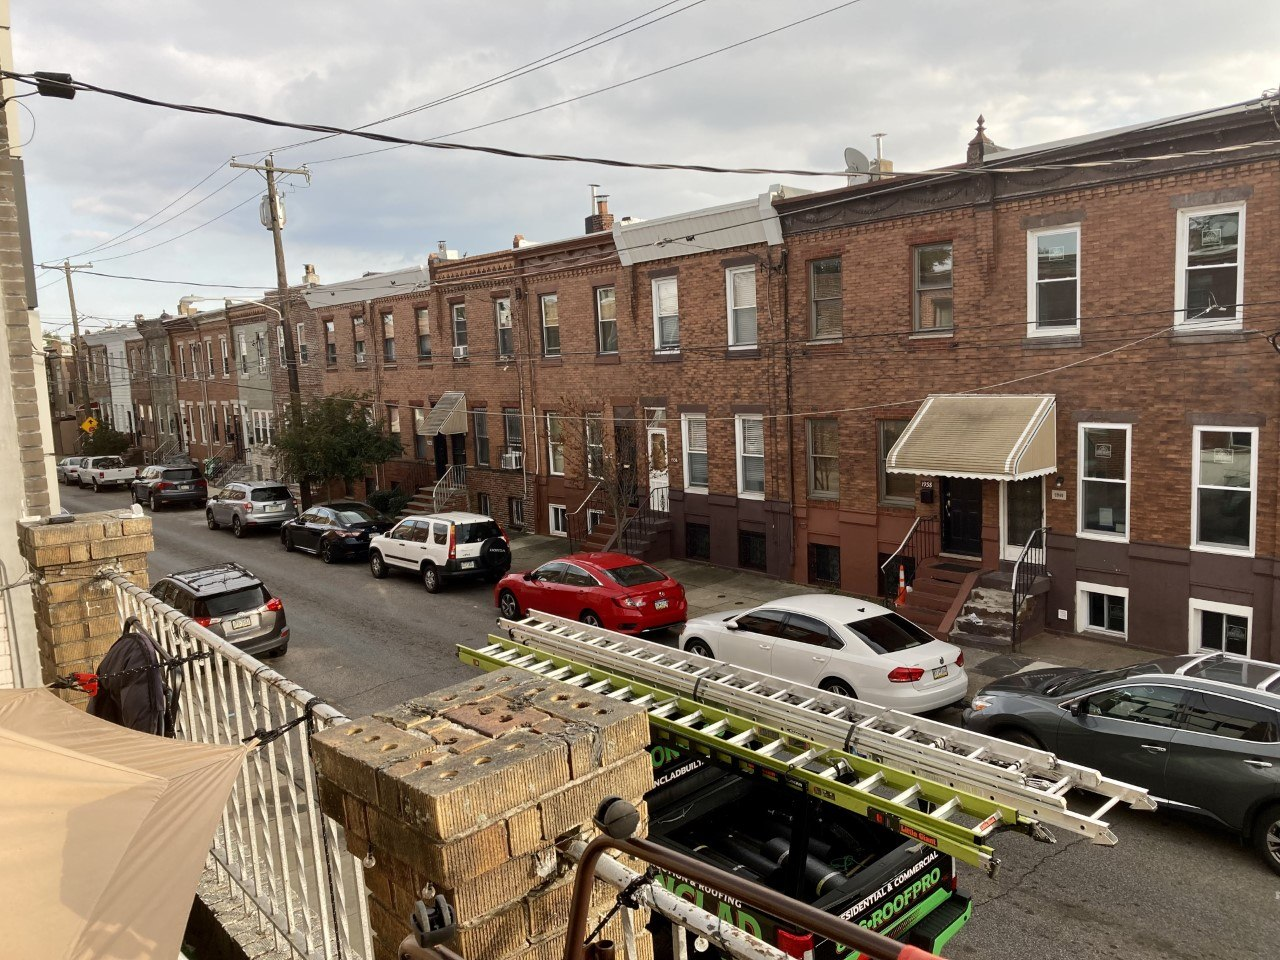 a view of the street below from the Airbnb tent on a roof in South Philly